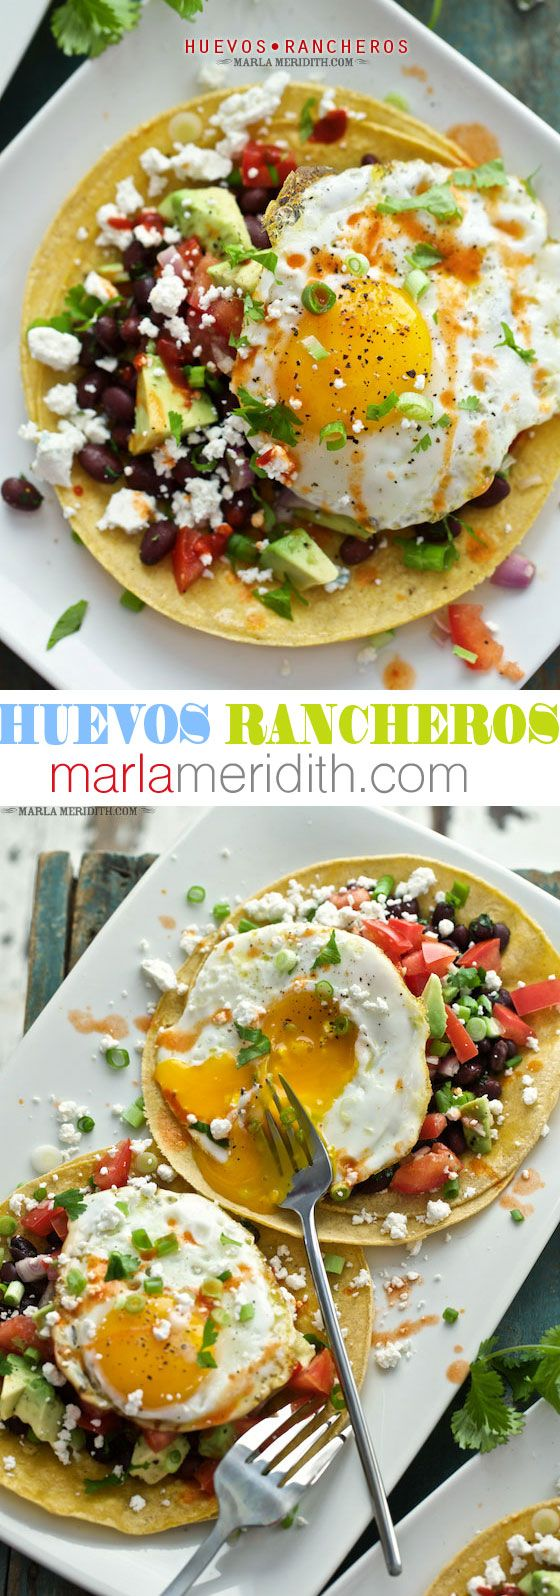 Huevos Rancheros | Egg lovers favorite breakfast! MarlaMeridith.com